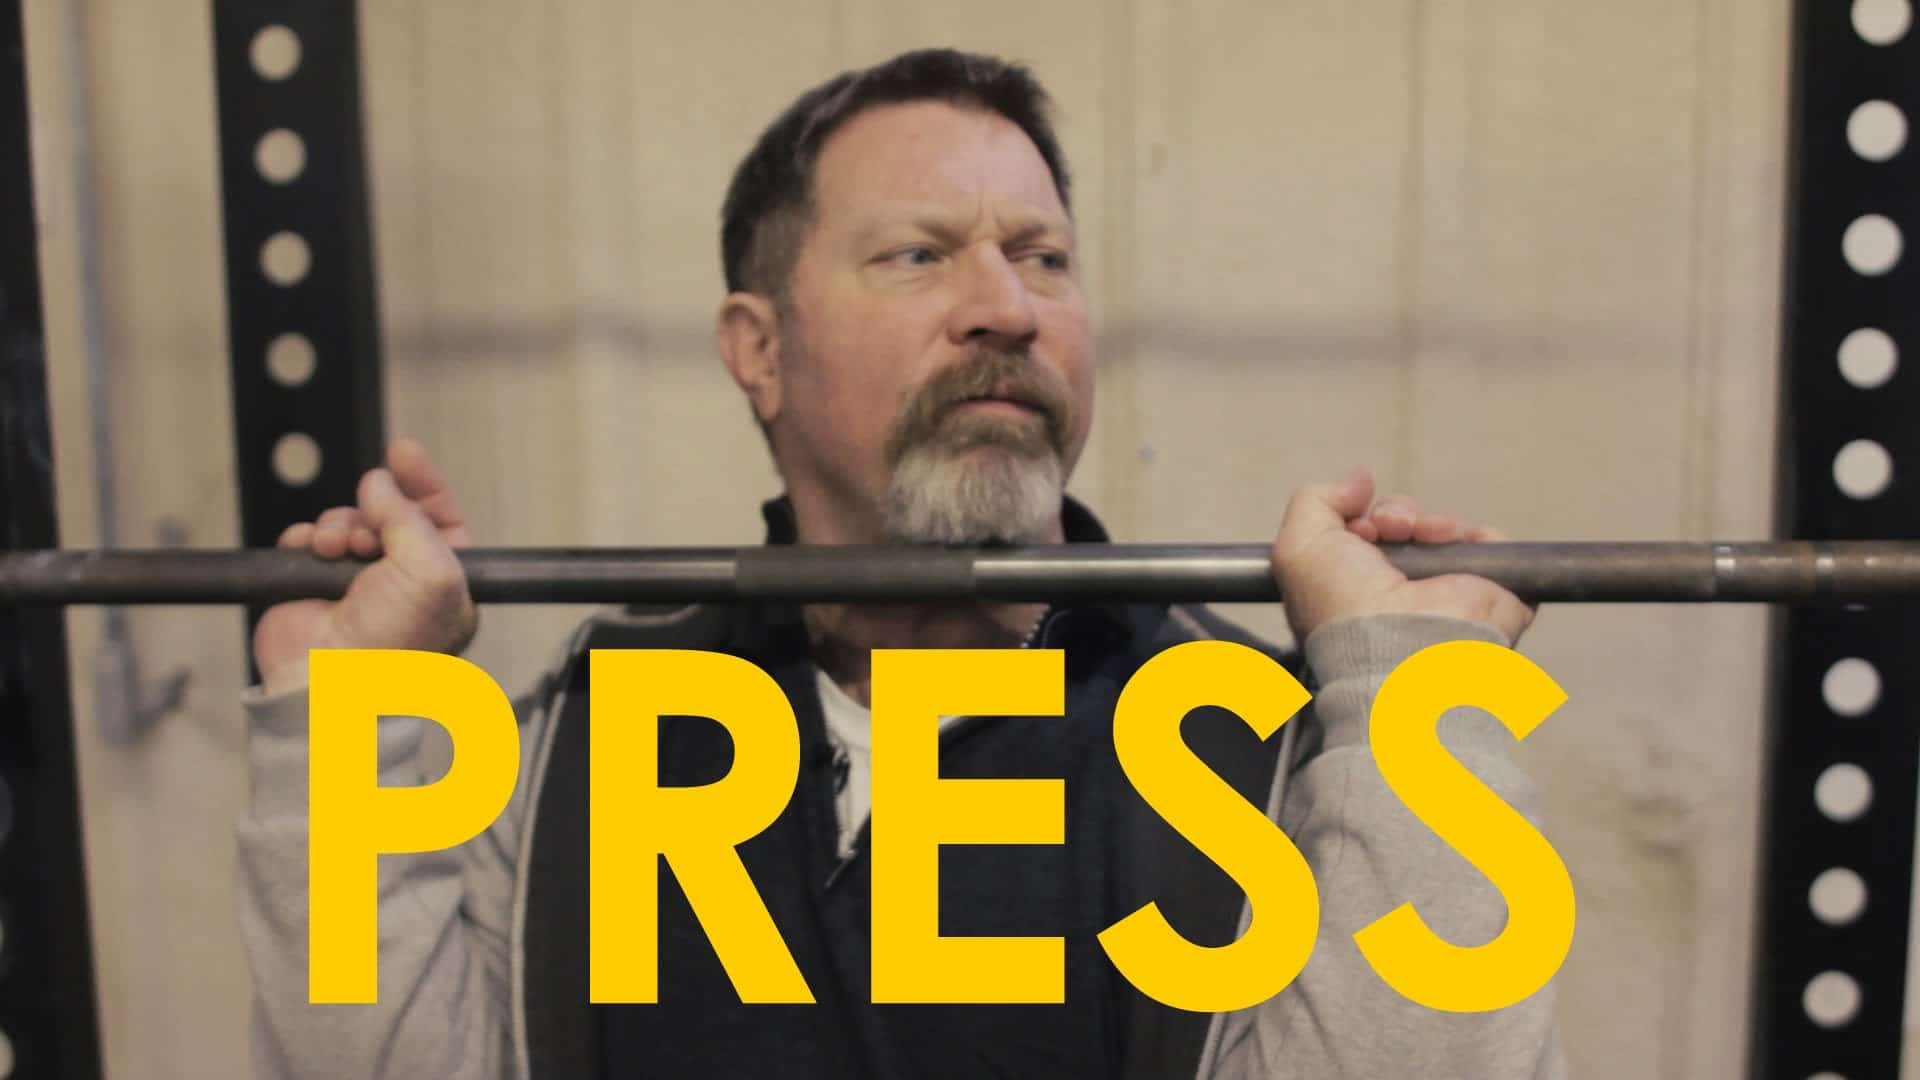 How to Do an Overhead Press | The Art of Manliness